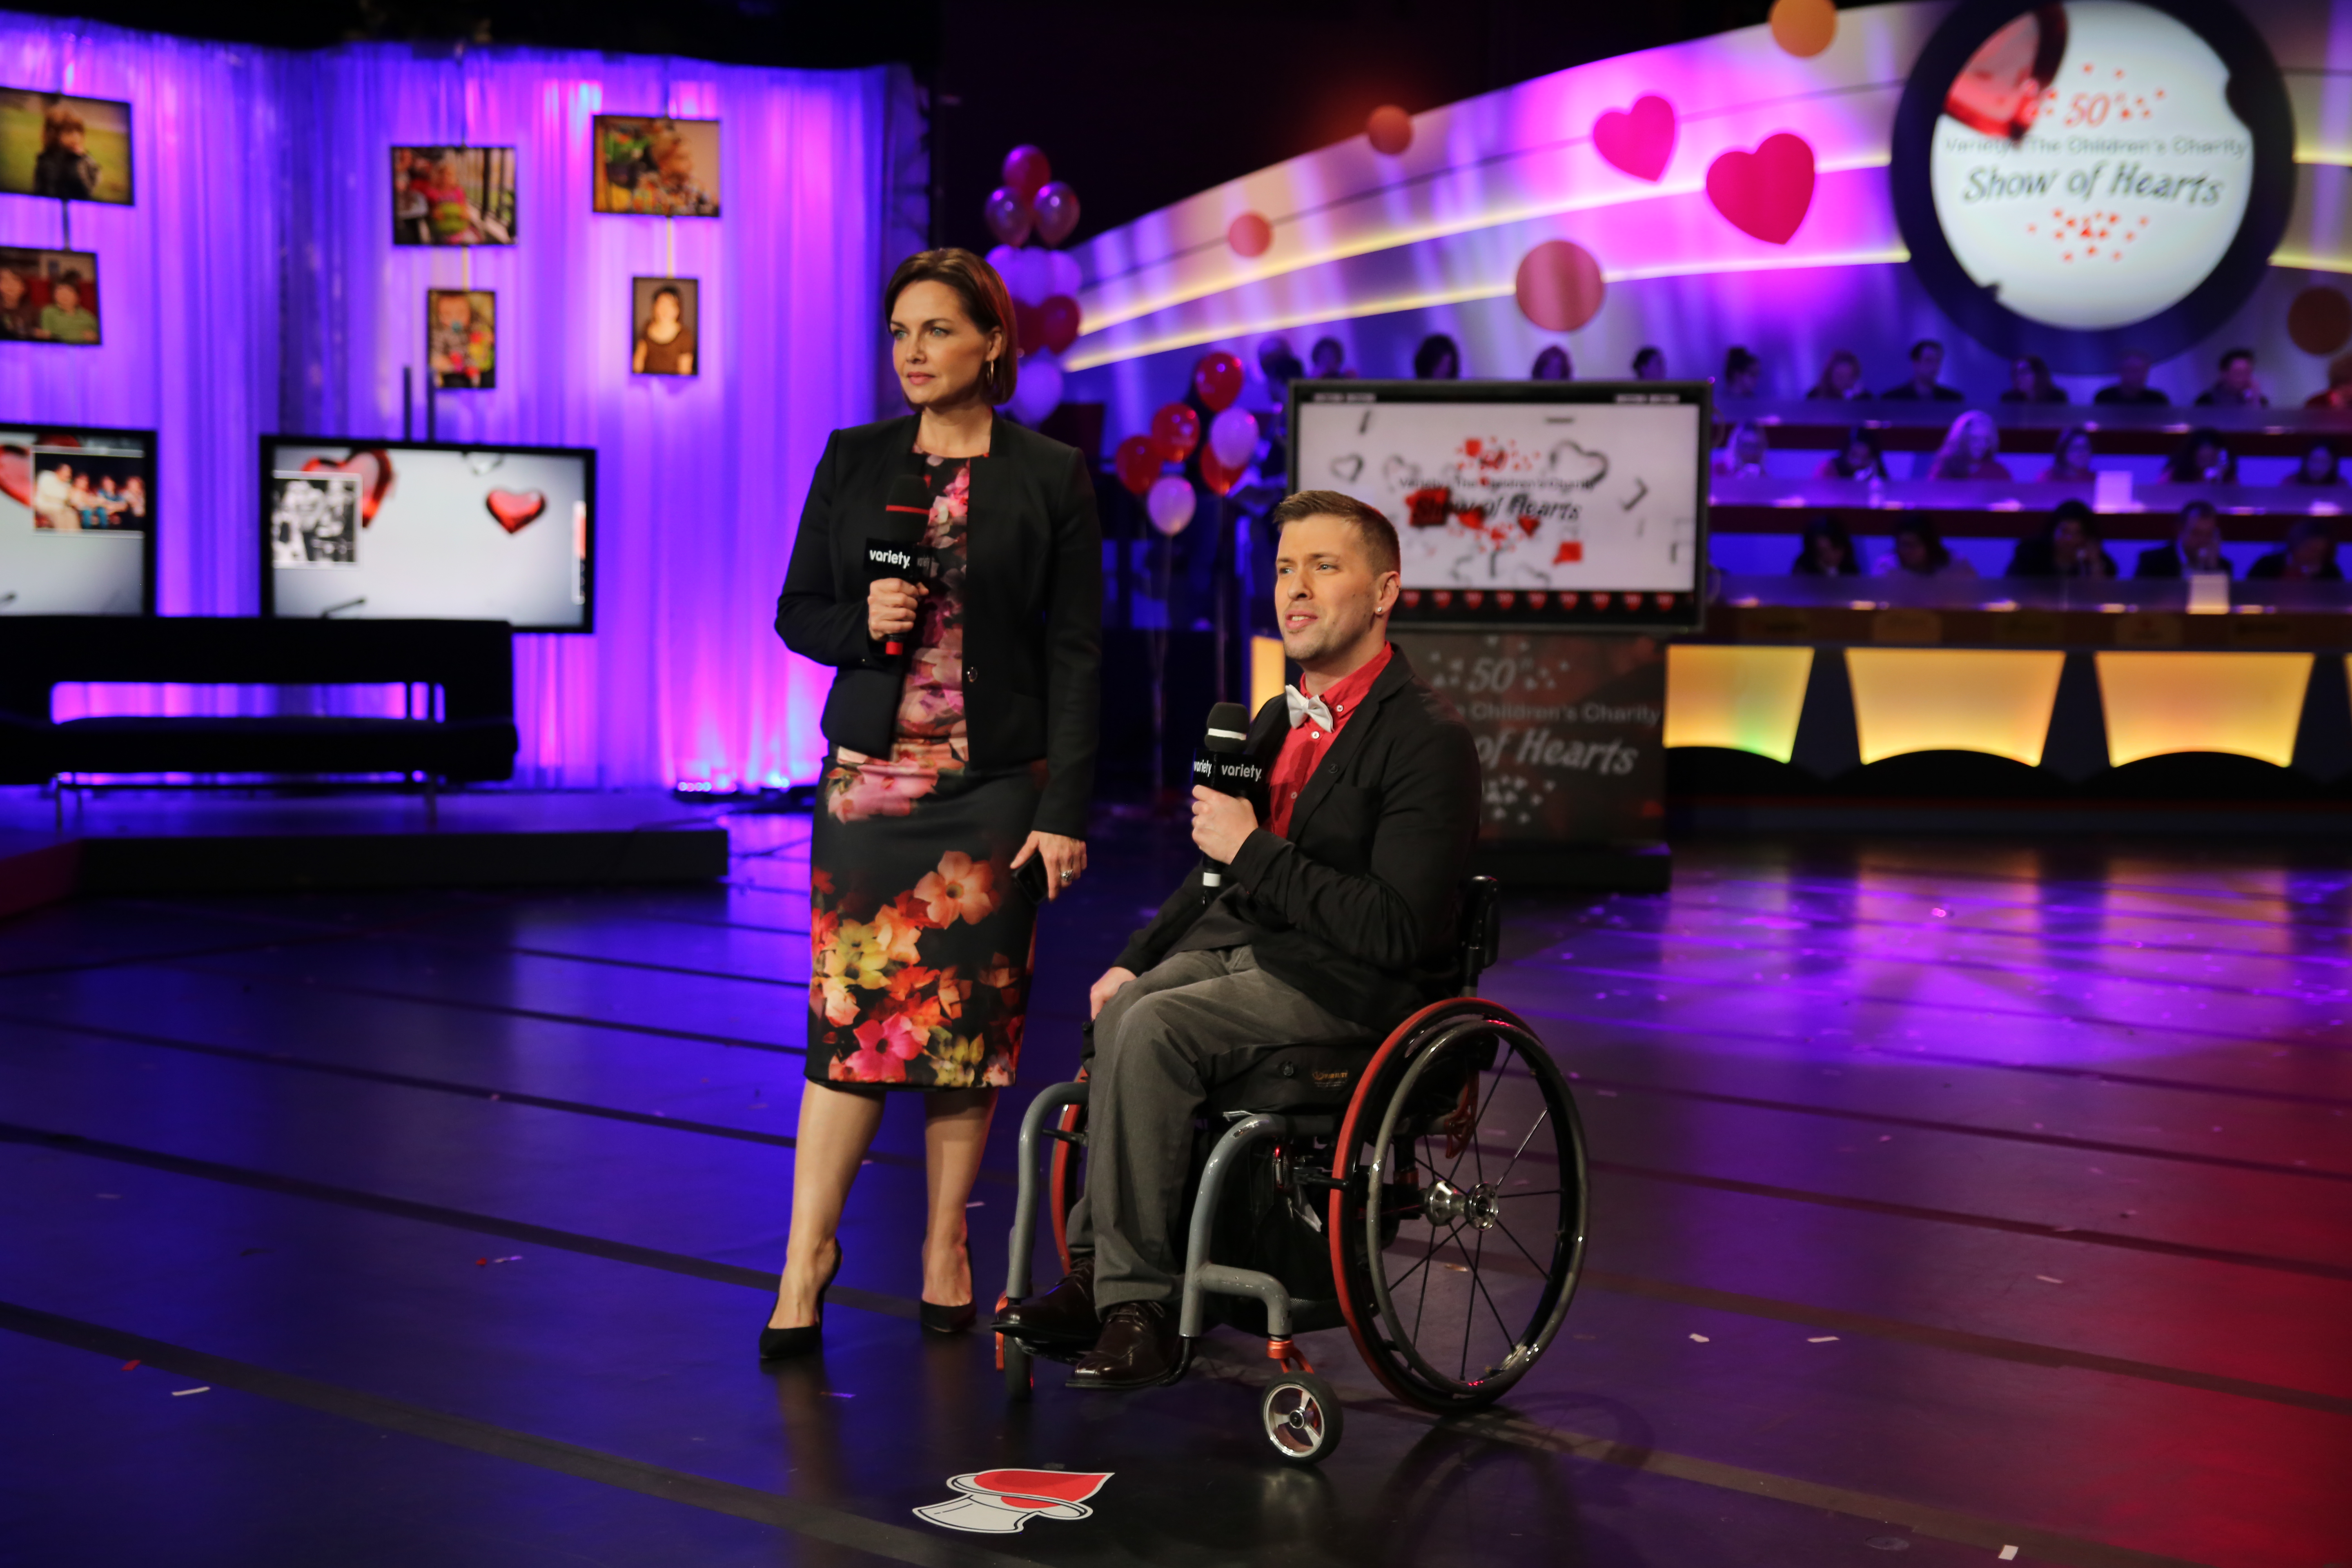 Show of Hearts Telethon 2016 - 3